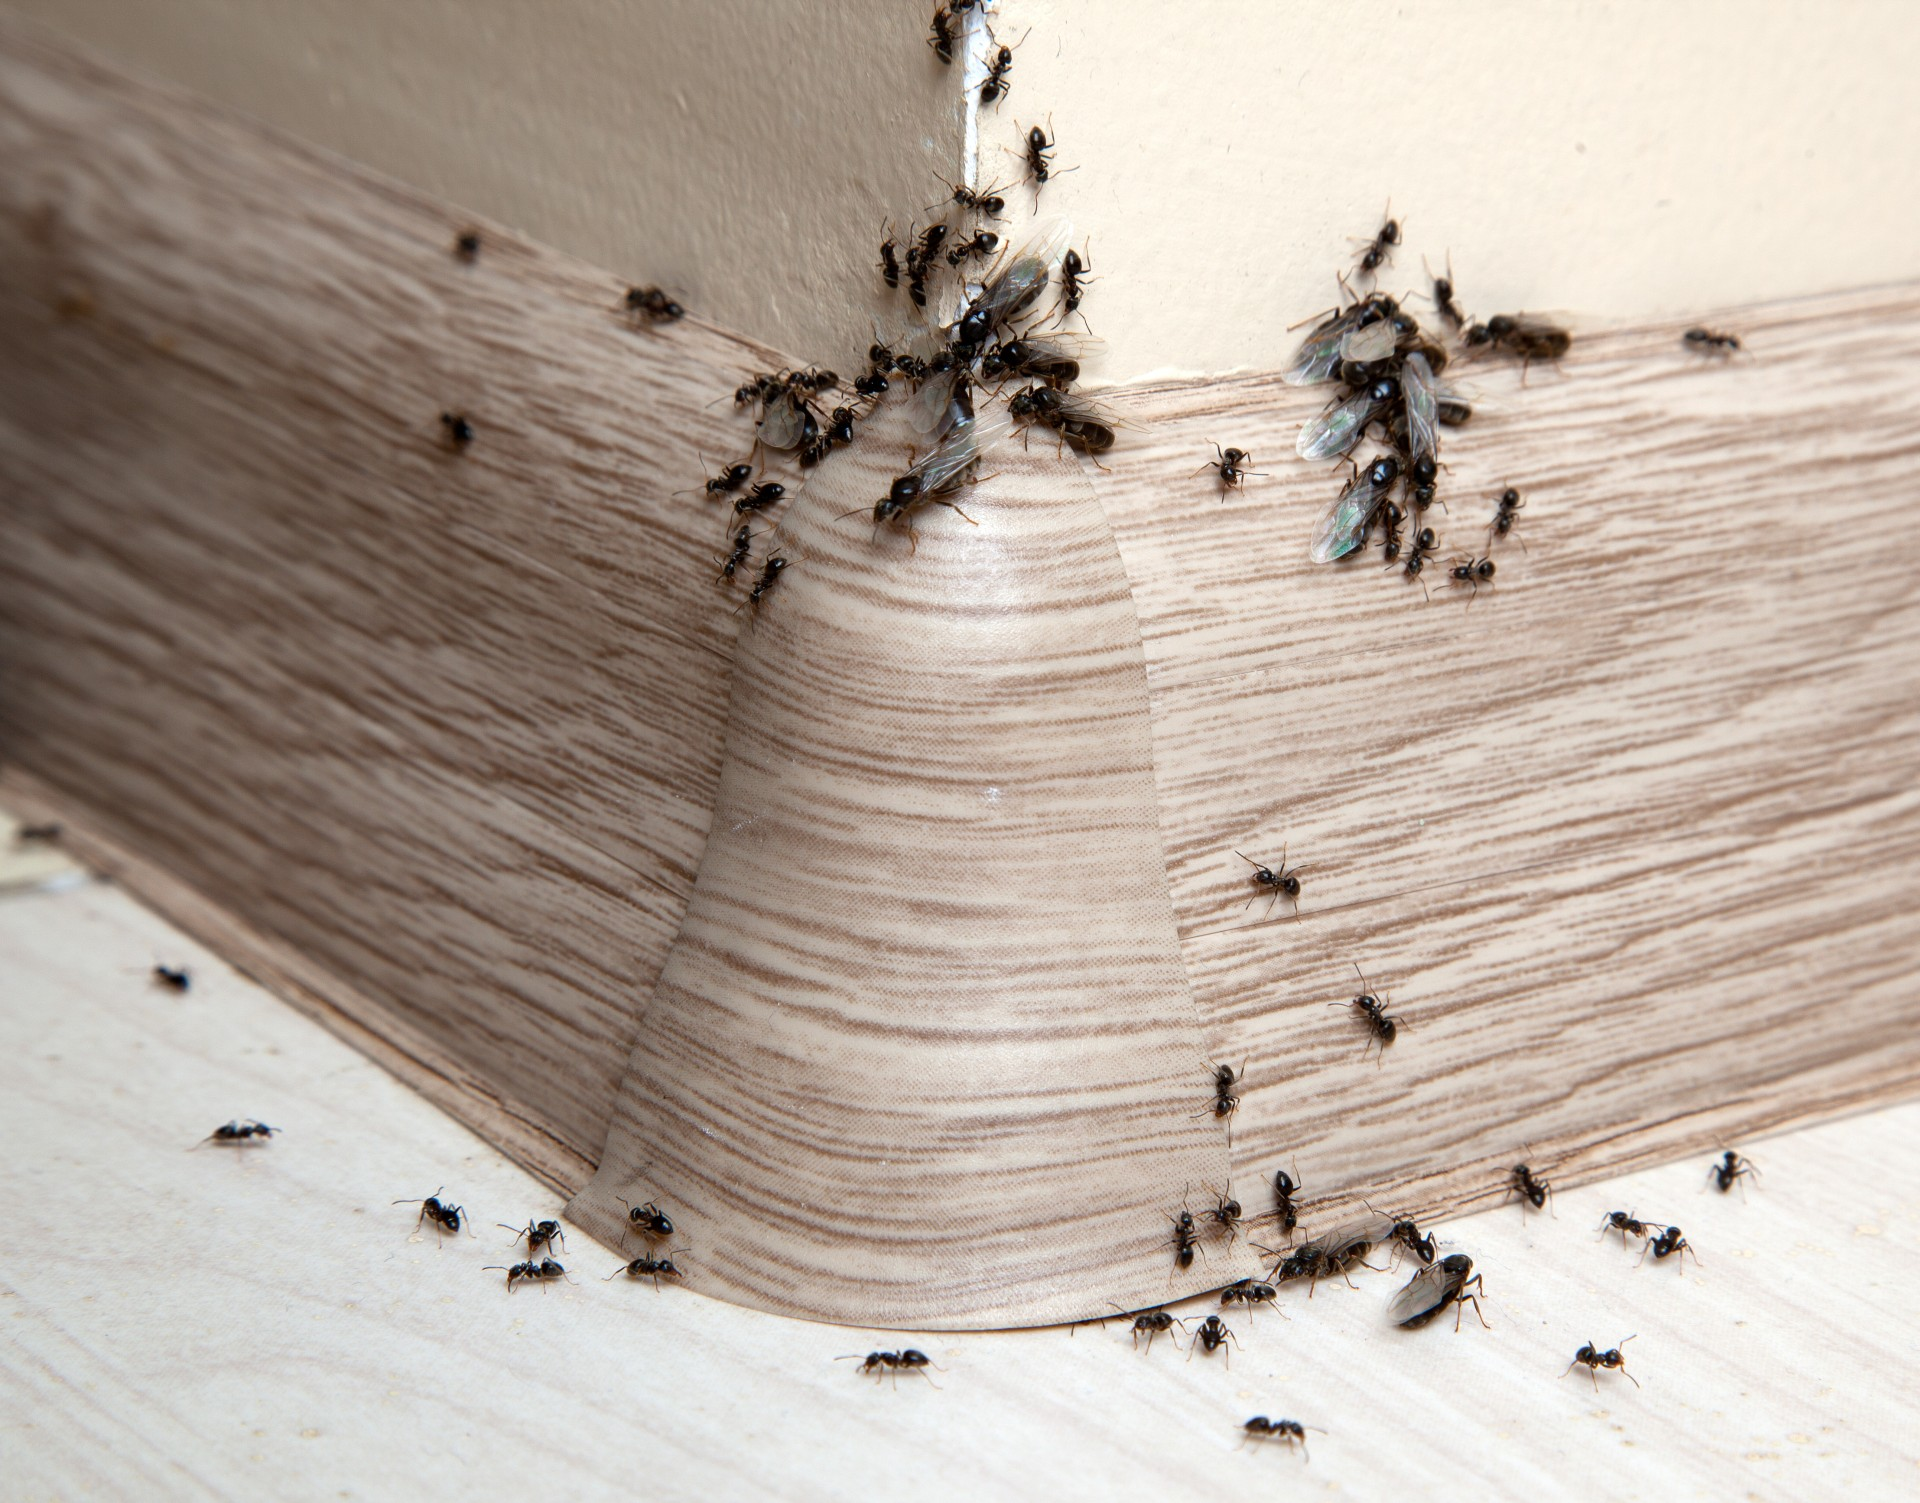 Ant Infestation, Pest Control in Hampton Hill, Hampton, TW12. Call Now 020 8166 9746